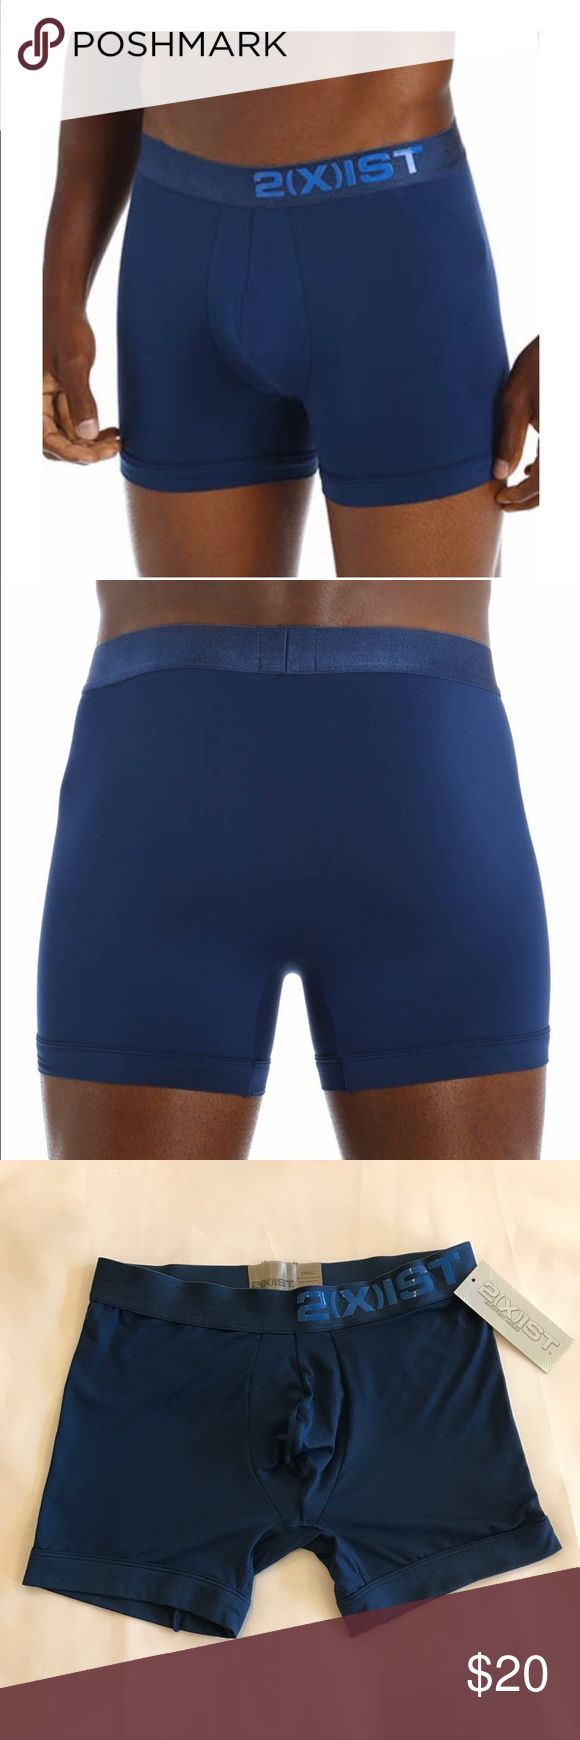 2XIST Electric Boxer Brief in Blue b87 Give your underwear drawer a jolt of comfort w/ these Electric collection boxer briefs! The soft, Nylon blend knit is engineered to wick moisture away from your skin so you'll stay dry and cool throughout the day. Wicks away moisture to keep you dry and comfortable. Contour pouch centers and supports you. Crotch gusset inseam reduces chafing and bunching between legs. Seamless seat design. Smooth, exposed microfiber waistband with silicone embossed…